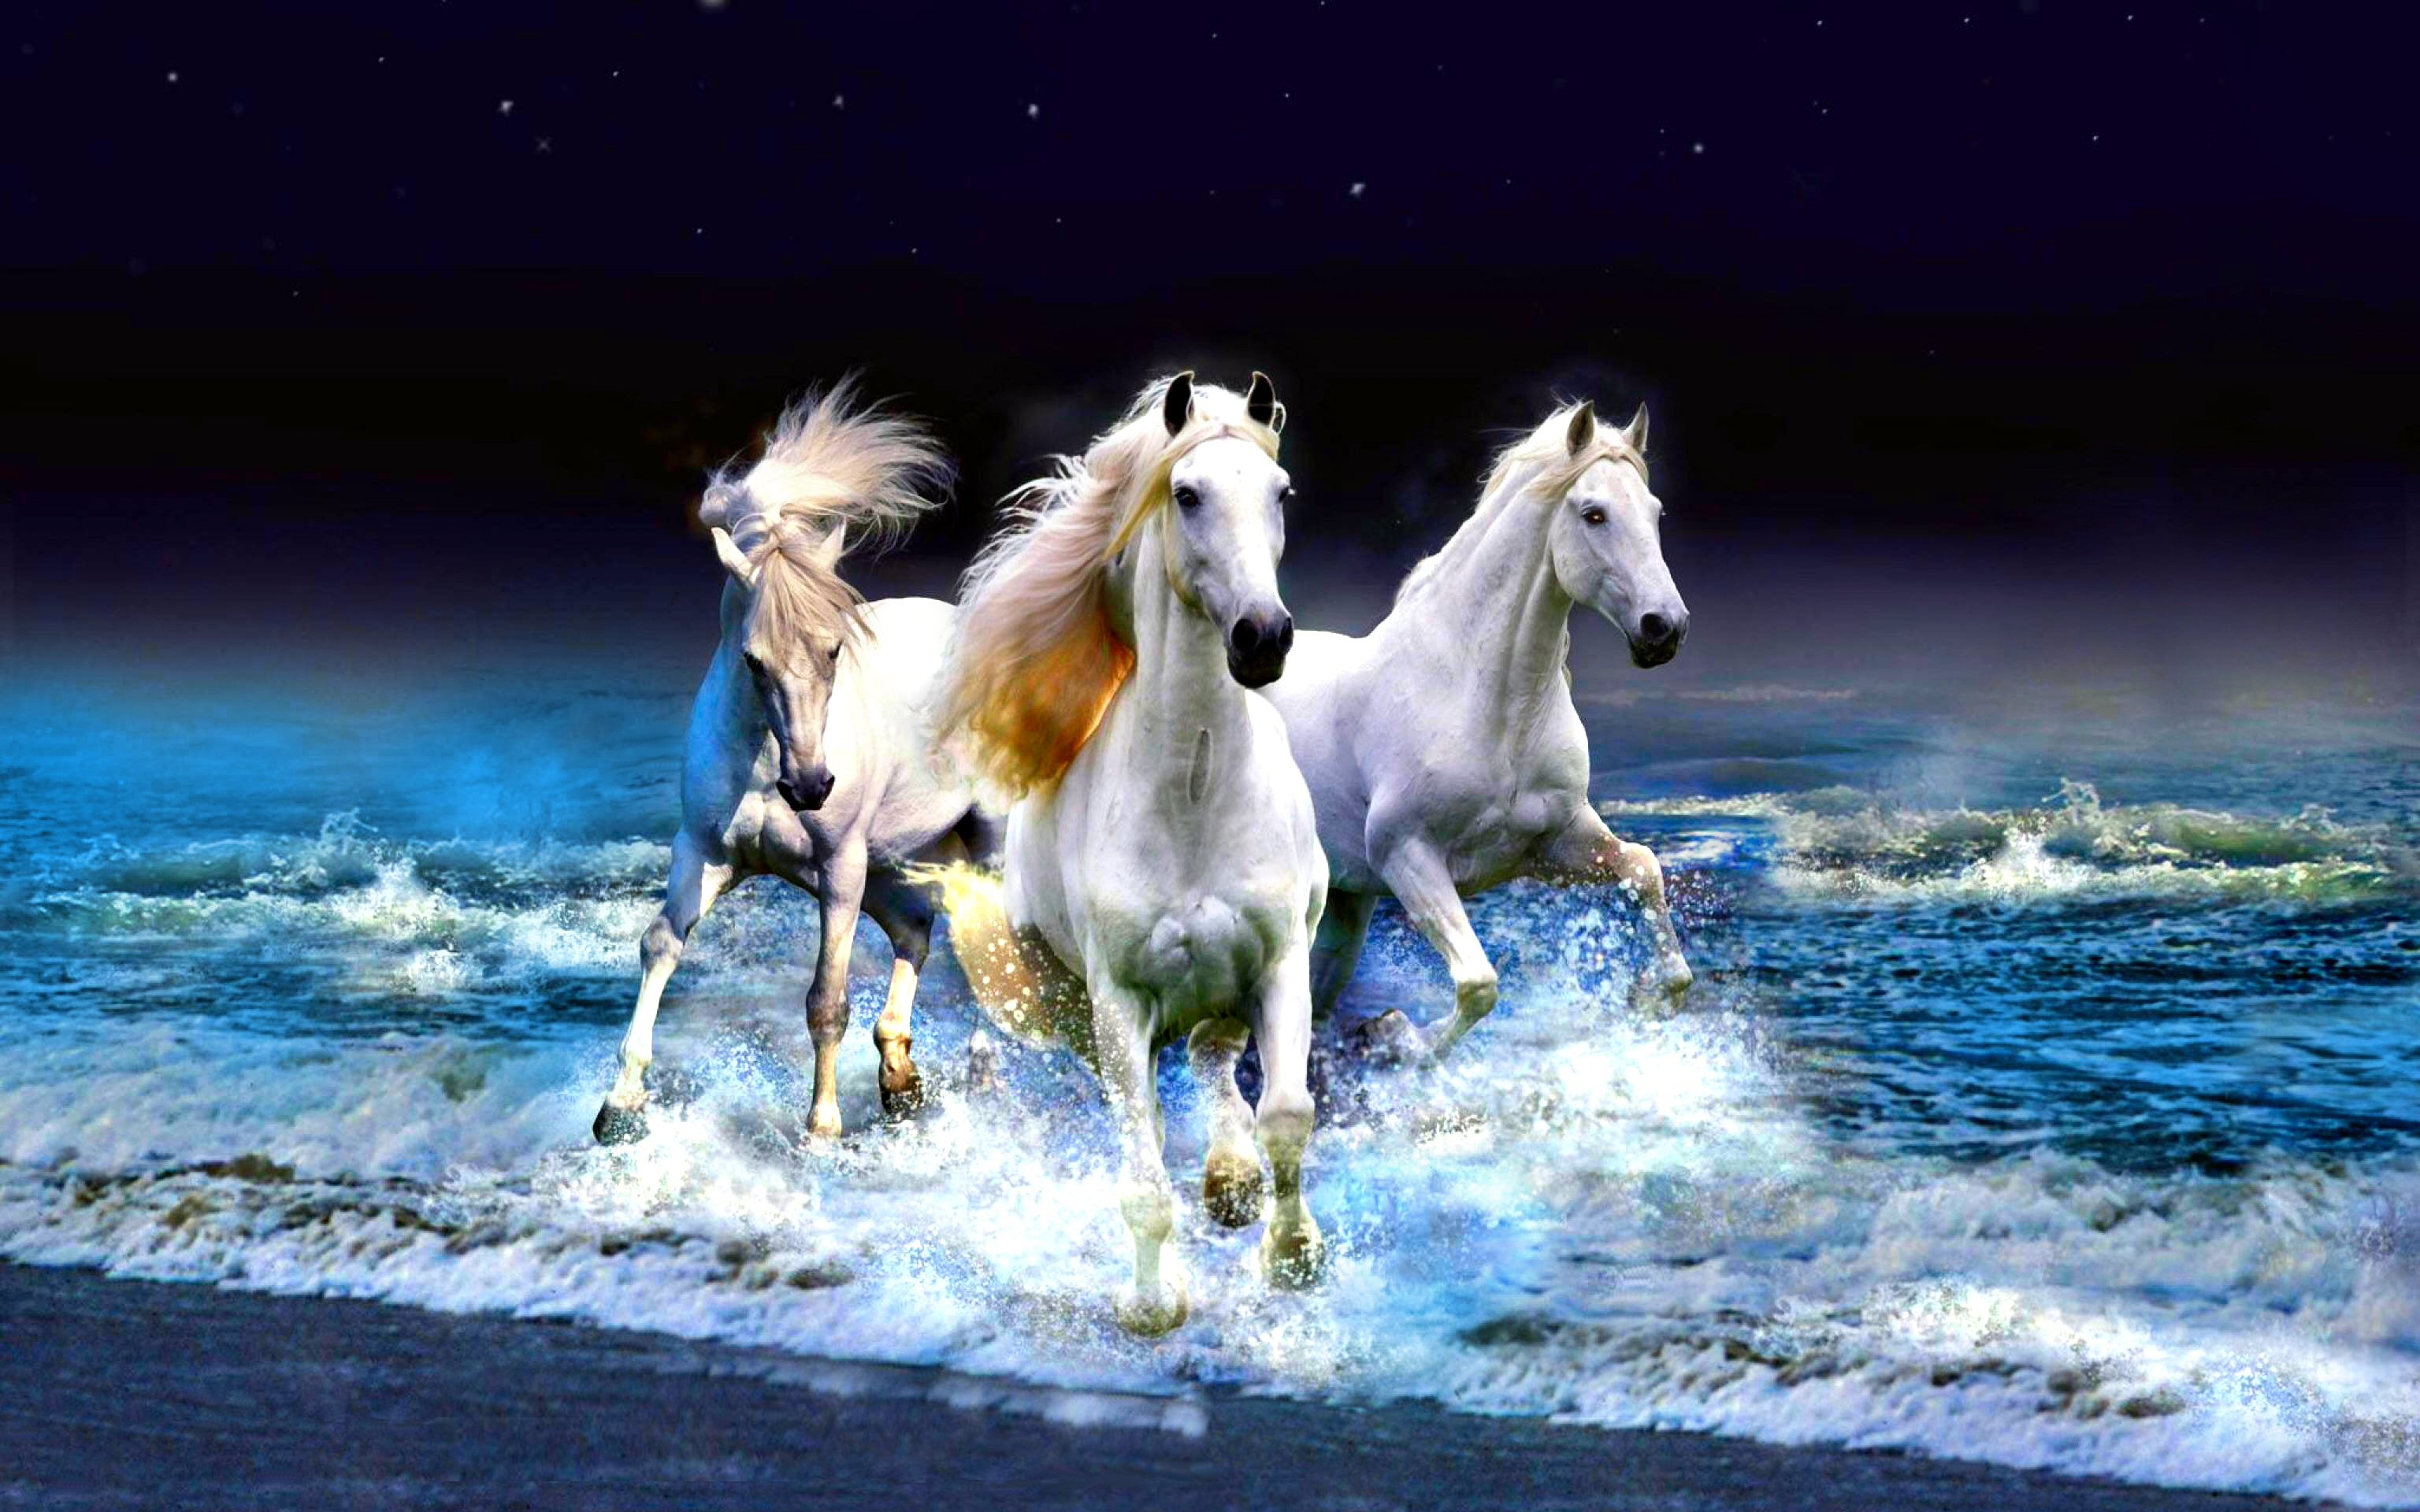 Moving Horse Wallpapers